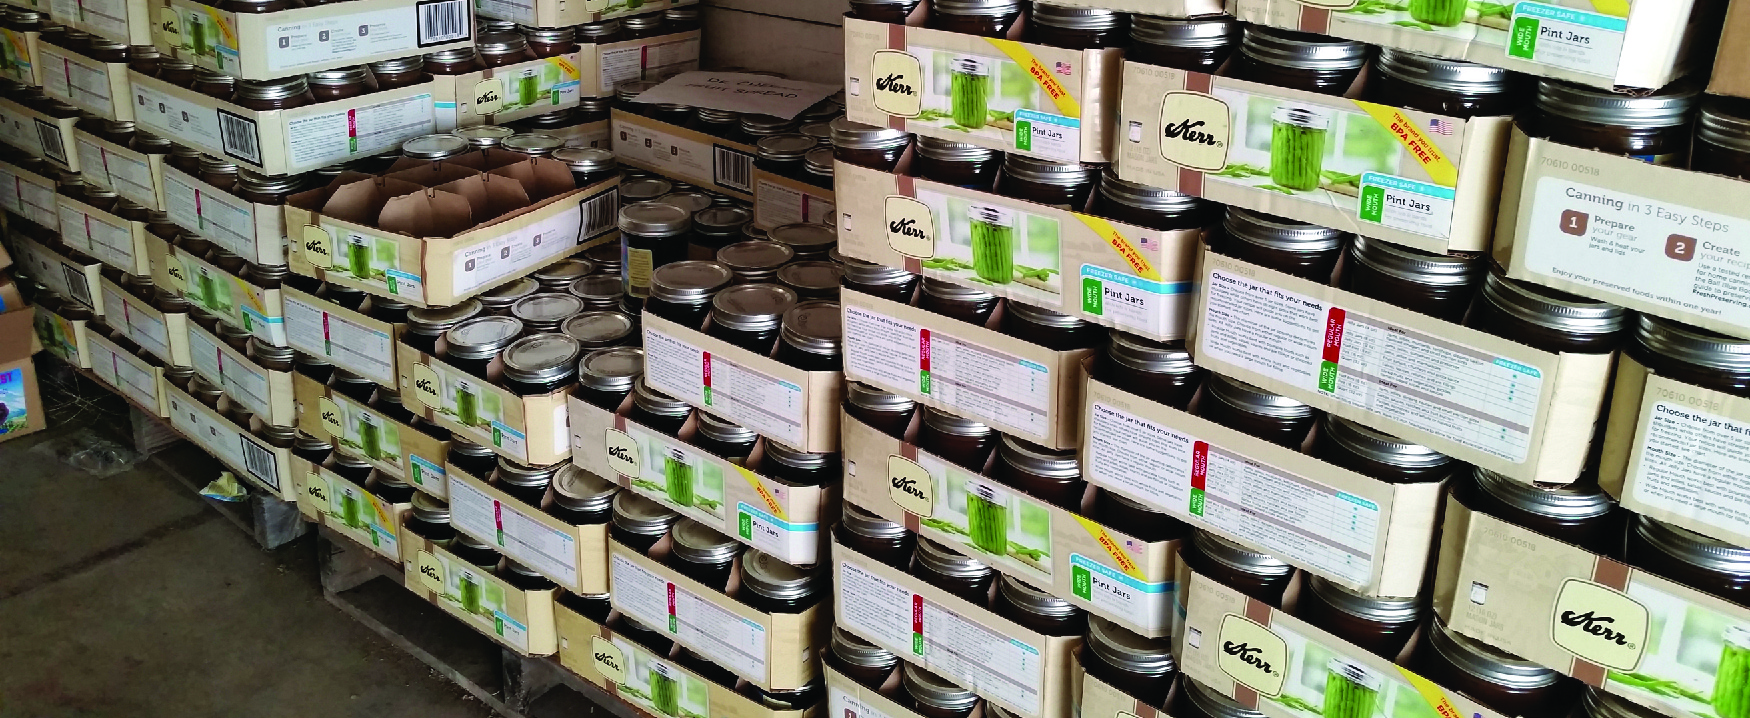 A photograph shows boxes of canning jars.